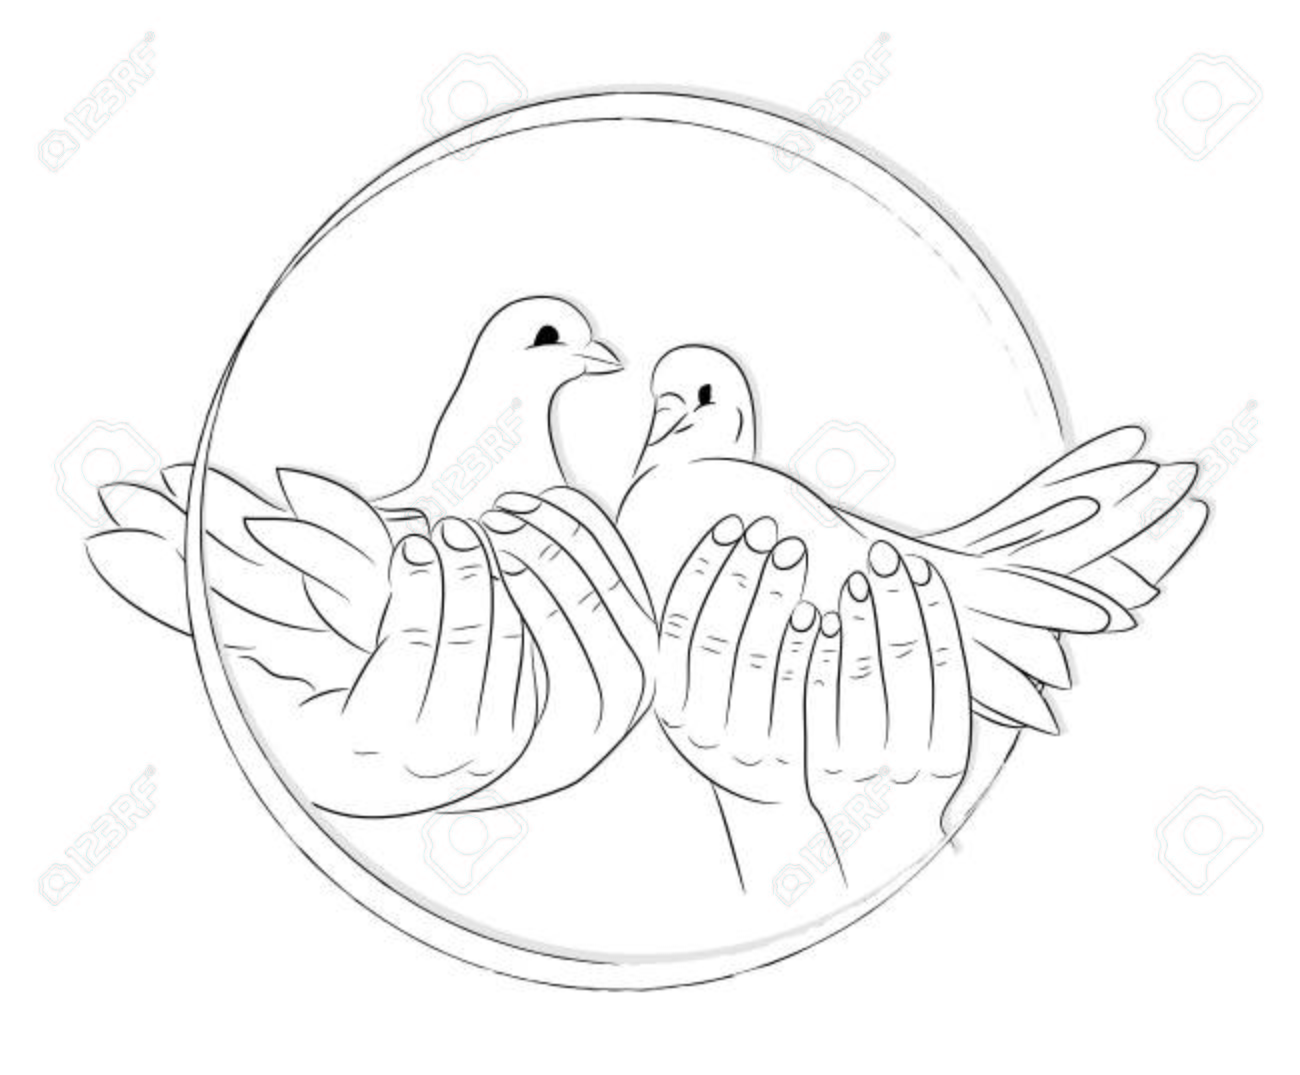 1300x1075 Sketch Of Hands Let Go Birds Of The World. Royalty Free Cliparts